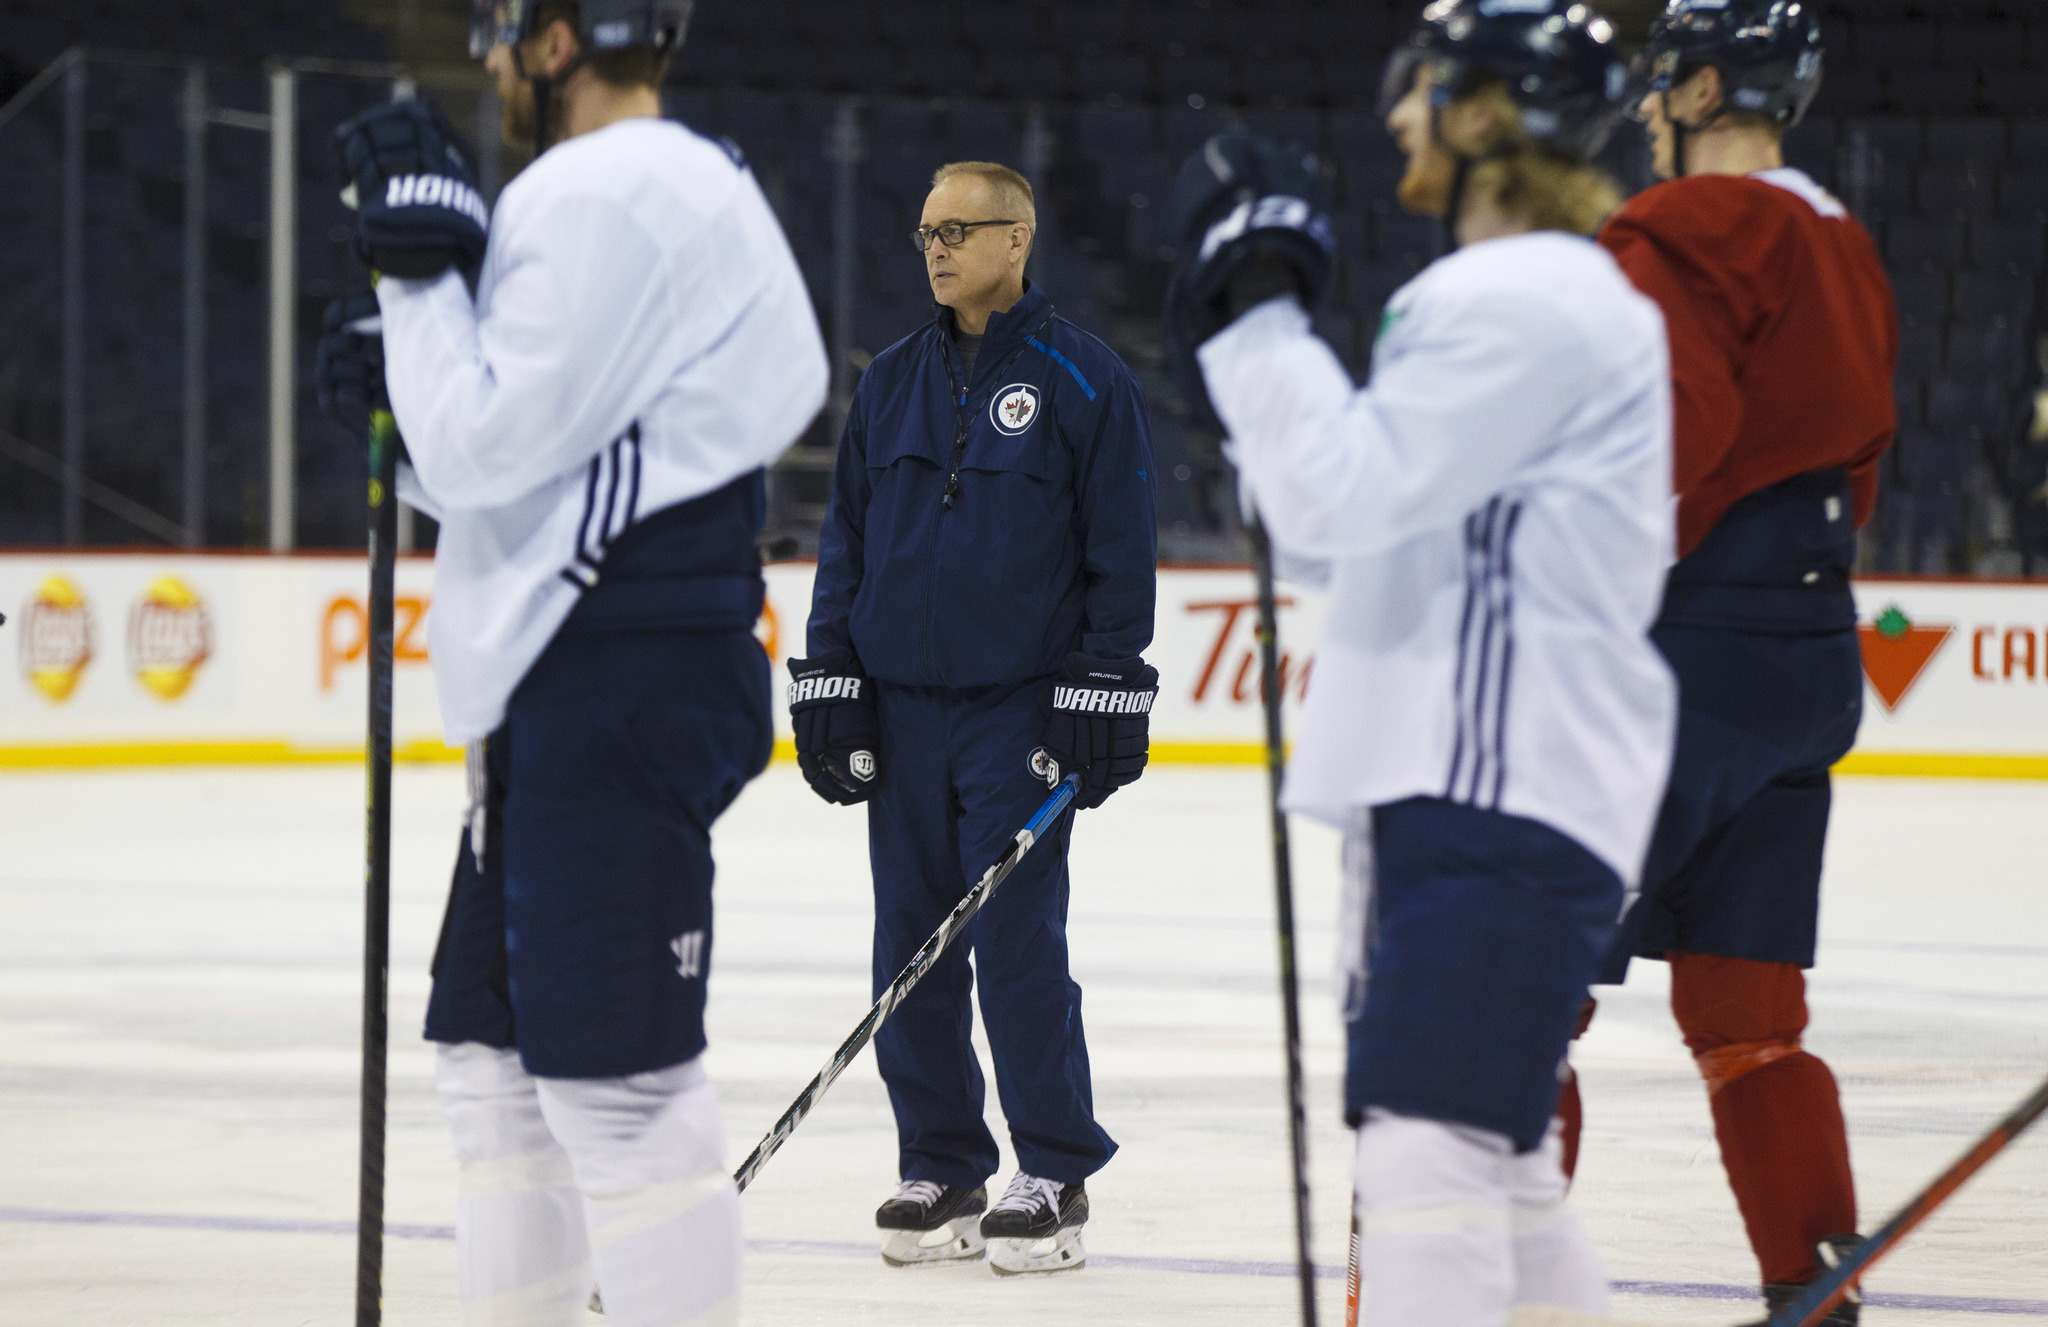 MIKE DEAL / WINNIPEG FREE PRESS FILES</p><p>Winnipeg Jets' head coach Paul Maurice said the team's commitment to defence would be the area of focus for them during practice, Thursday.</p>